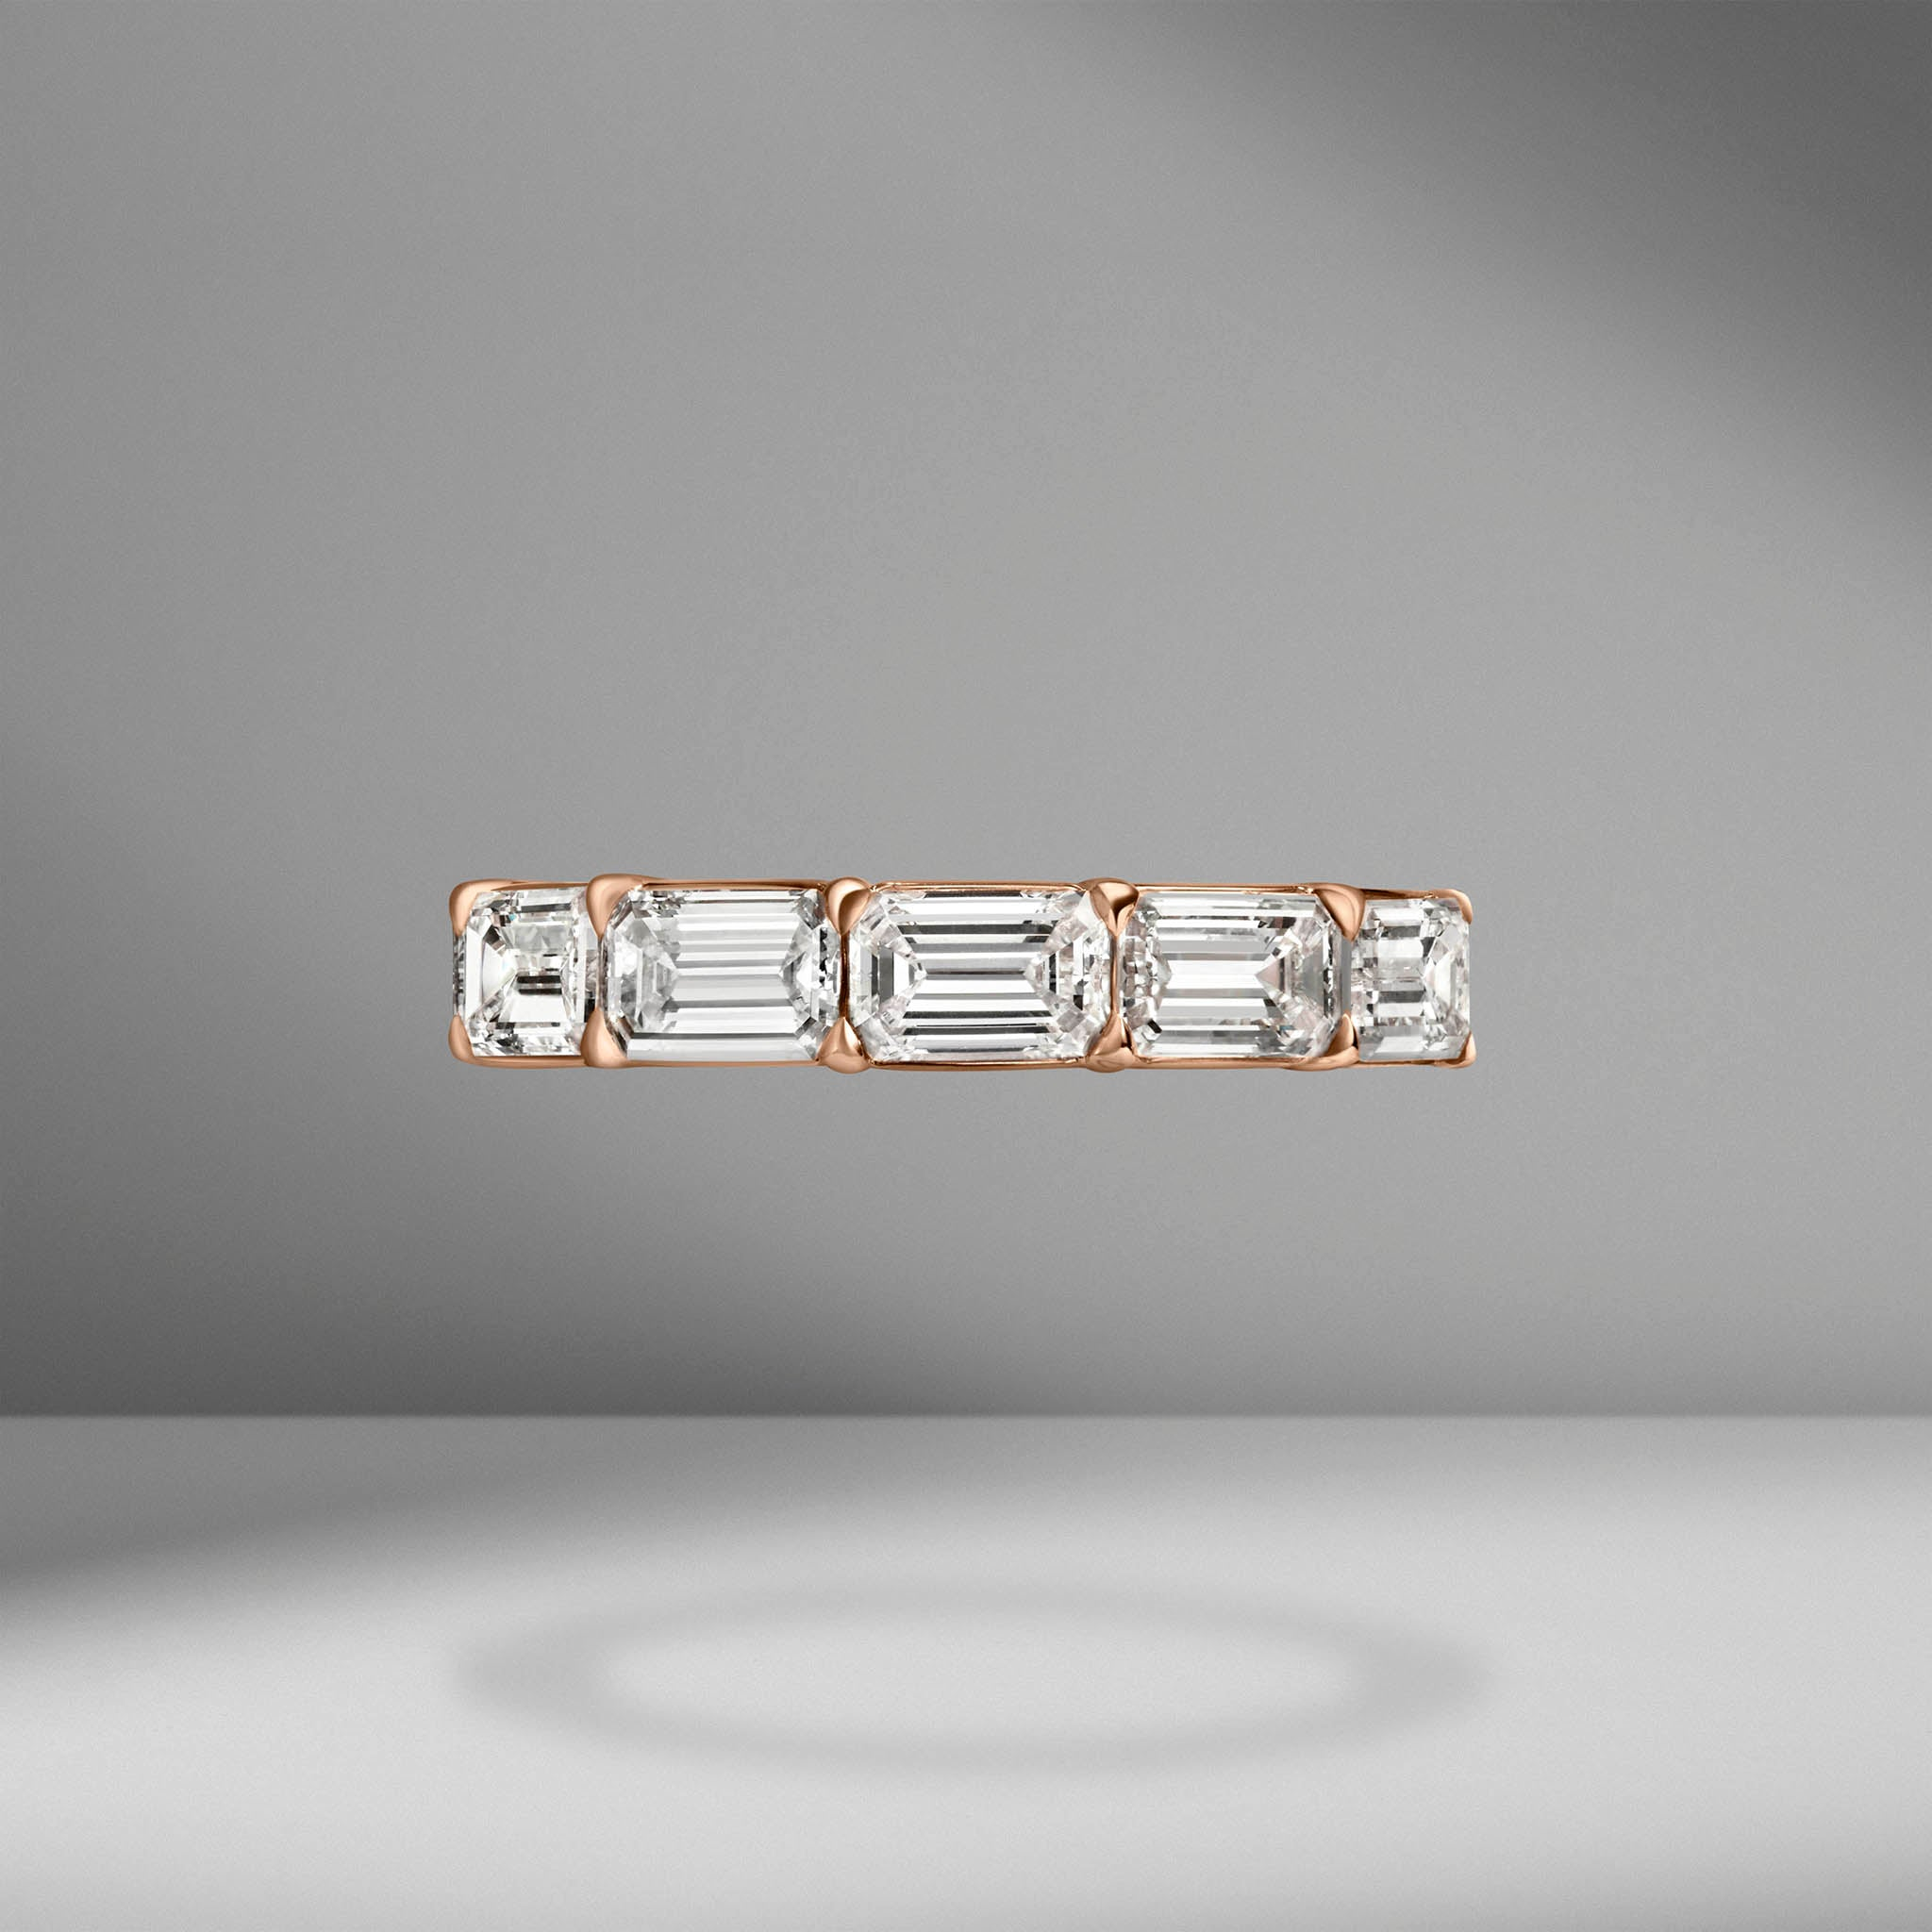 East-West Set Emerald Cut Eternity Band .45